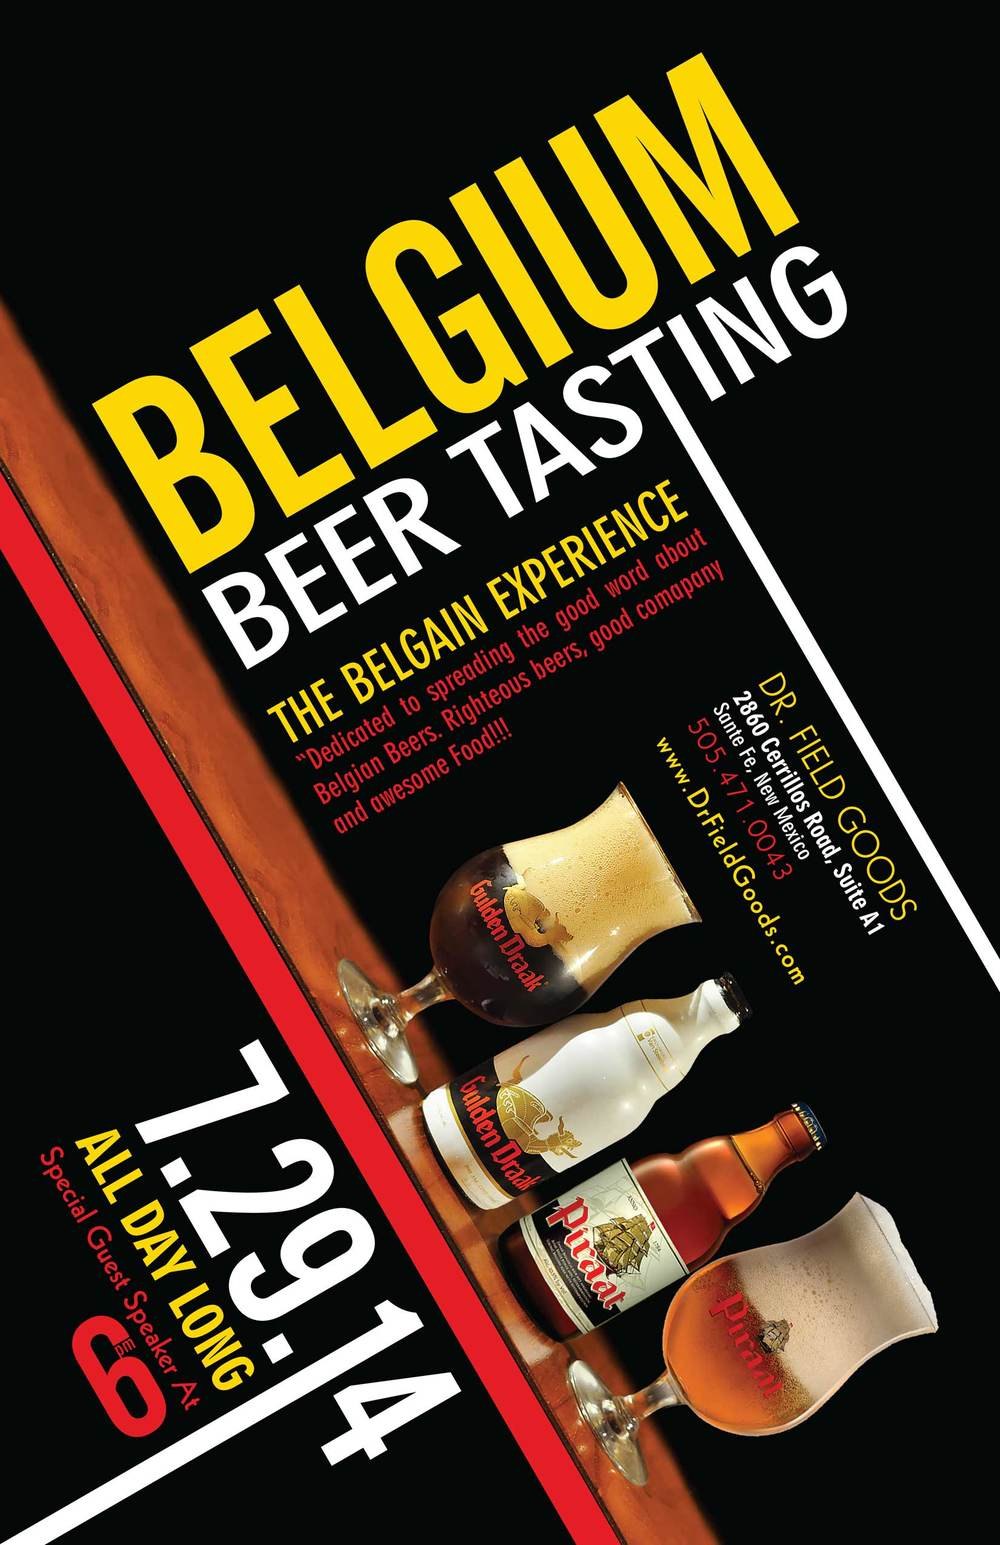 DFG_Belgium-Beer-Poster_Red-Zipper-Design.jpg